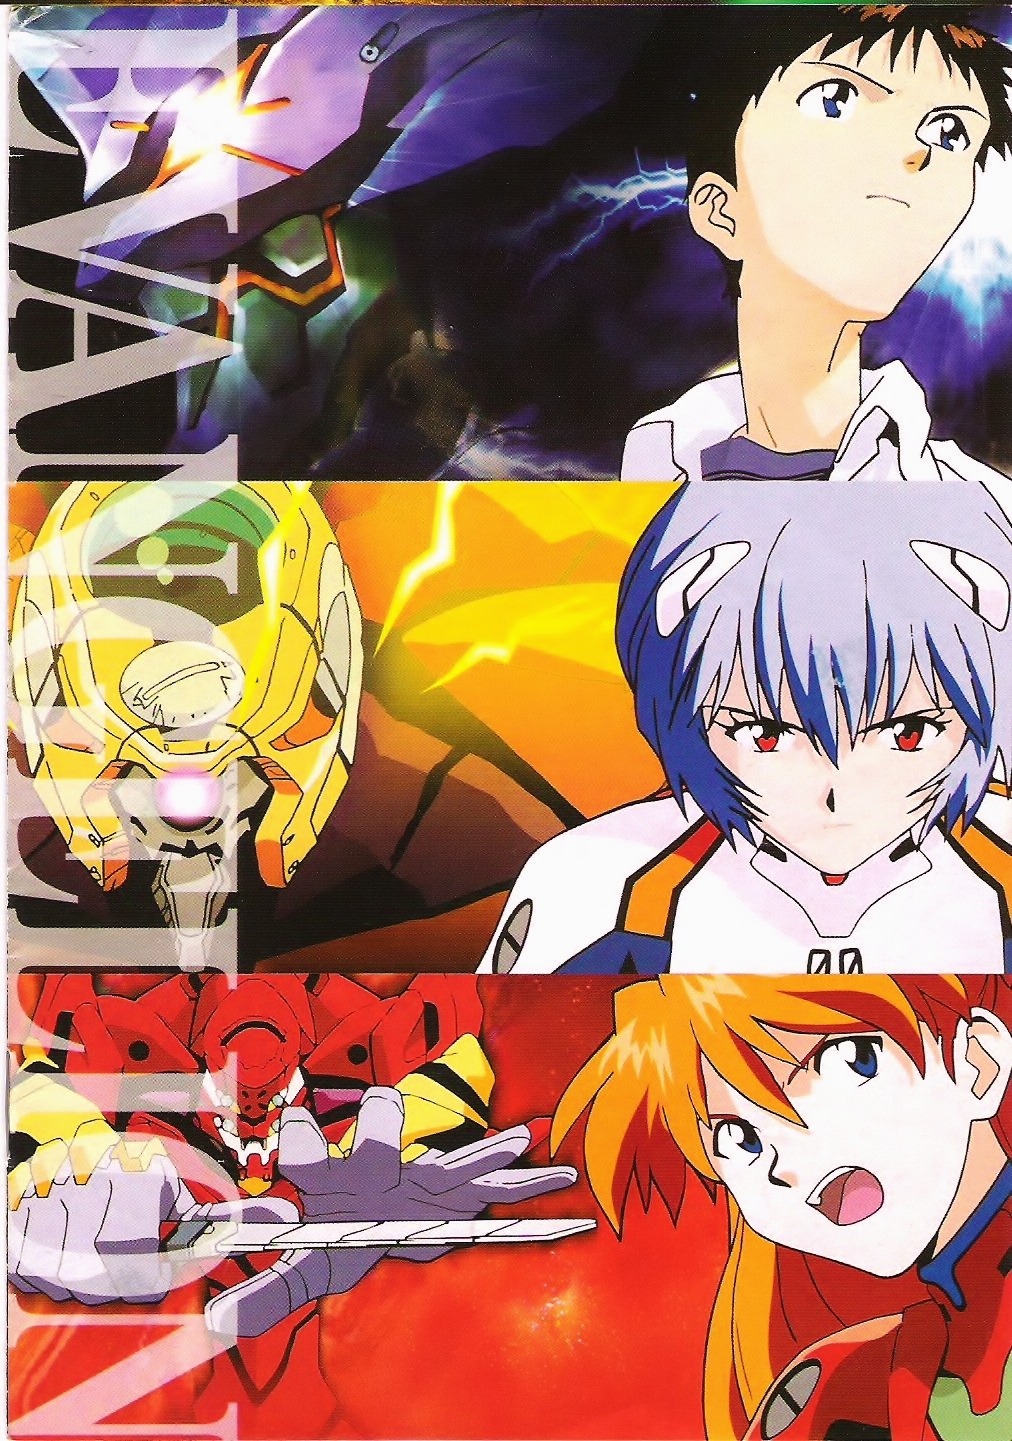 neon genesis evangelion zankoku na tenshi no thesis lyrics Neon genesis evangelion theme song analysis here, you can not only find the lyrics english translation to the evangelion theme song zankoku na tenshi no thesis.